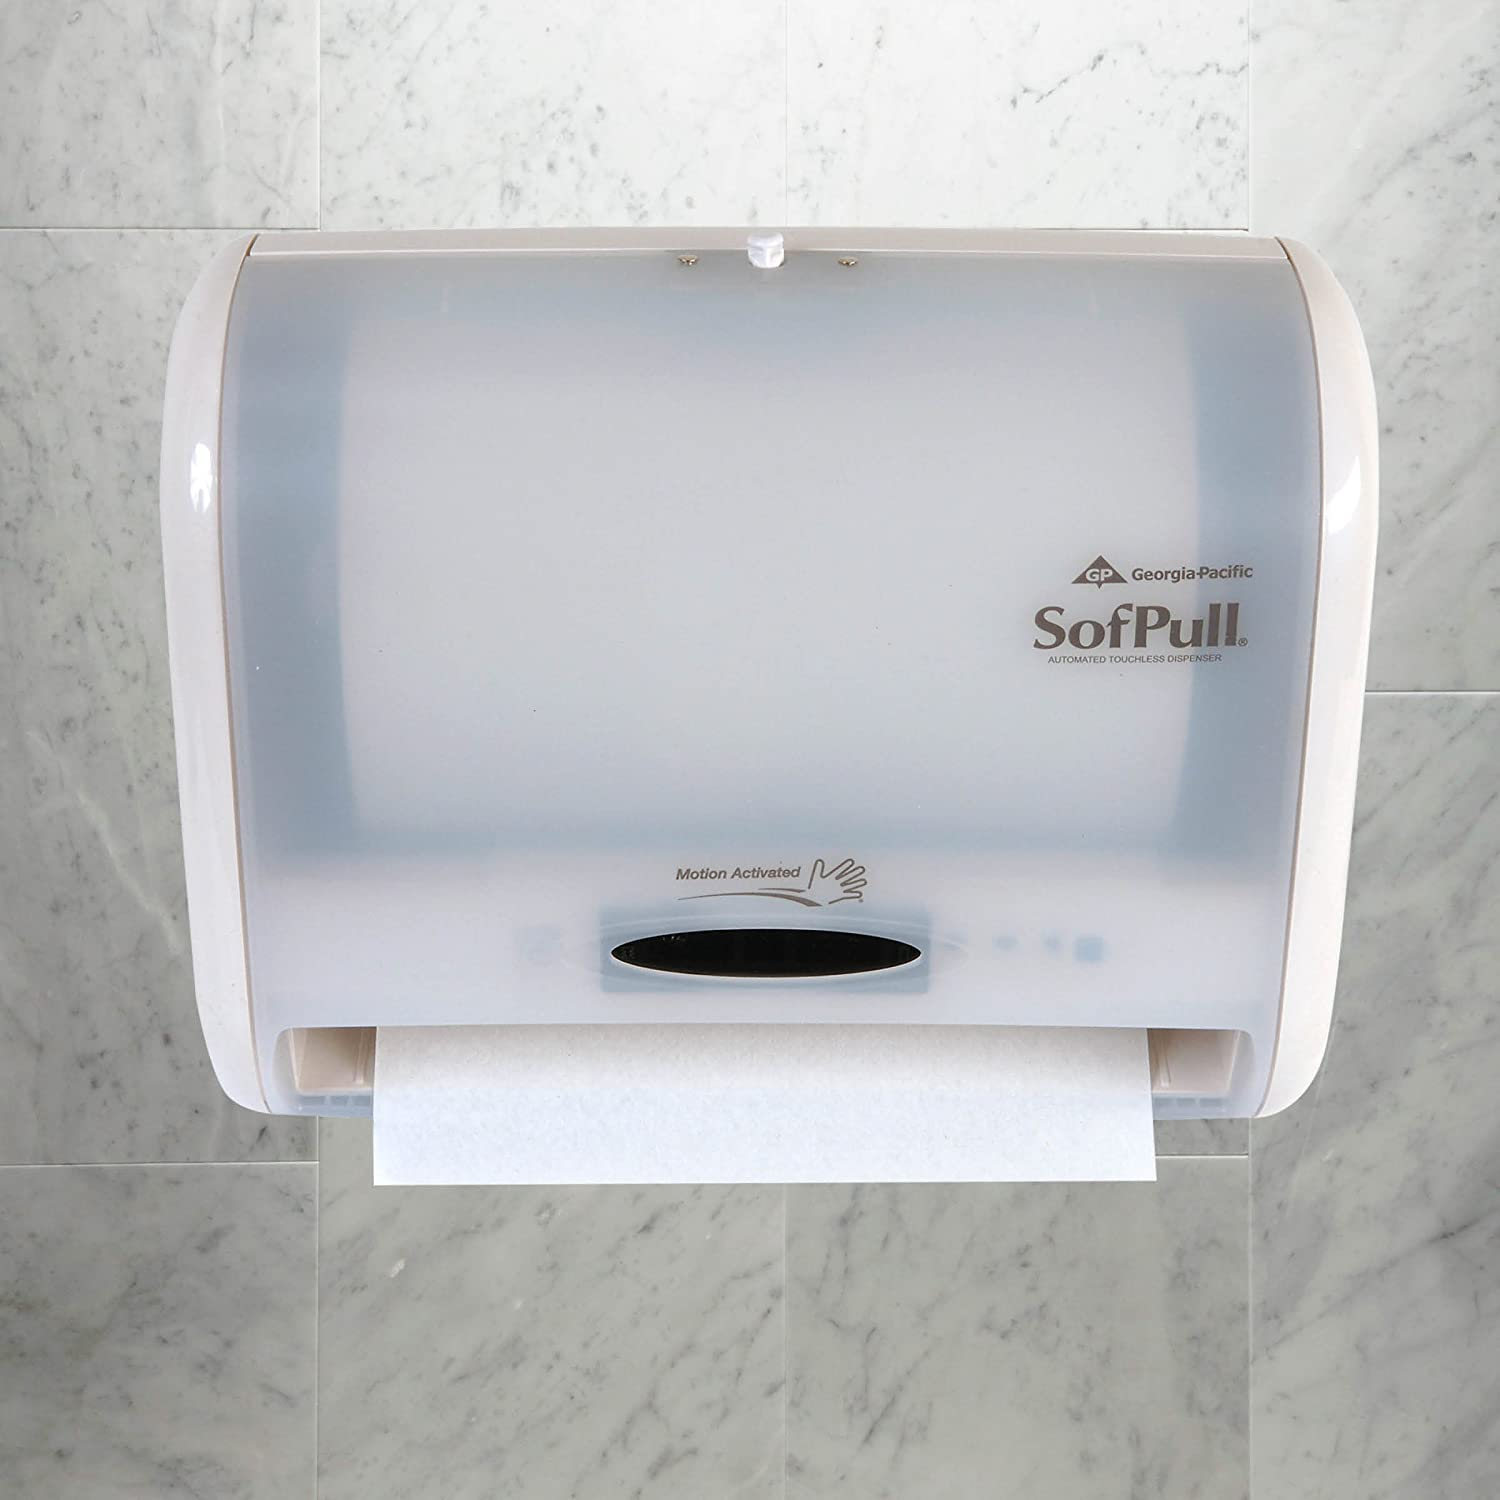 Georgia-Pacific Sofpull 58487 Automatic Touchless Towel Dispenser, Translucent White